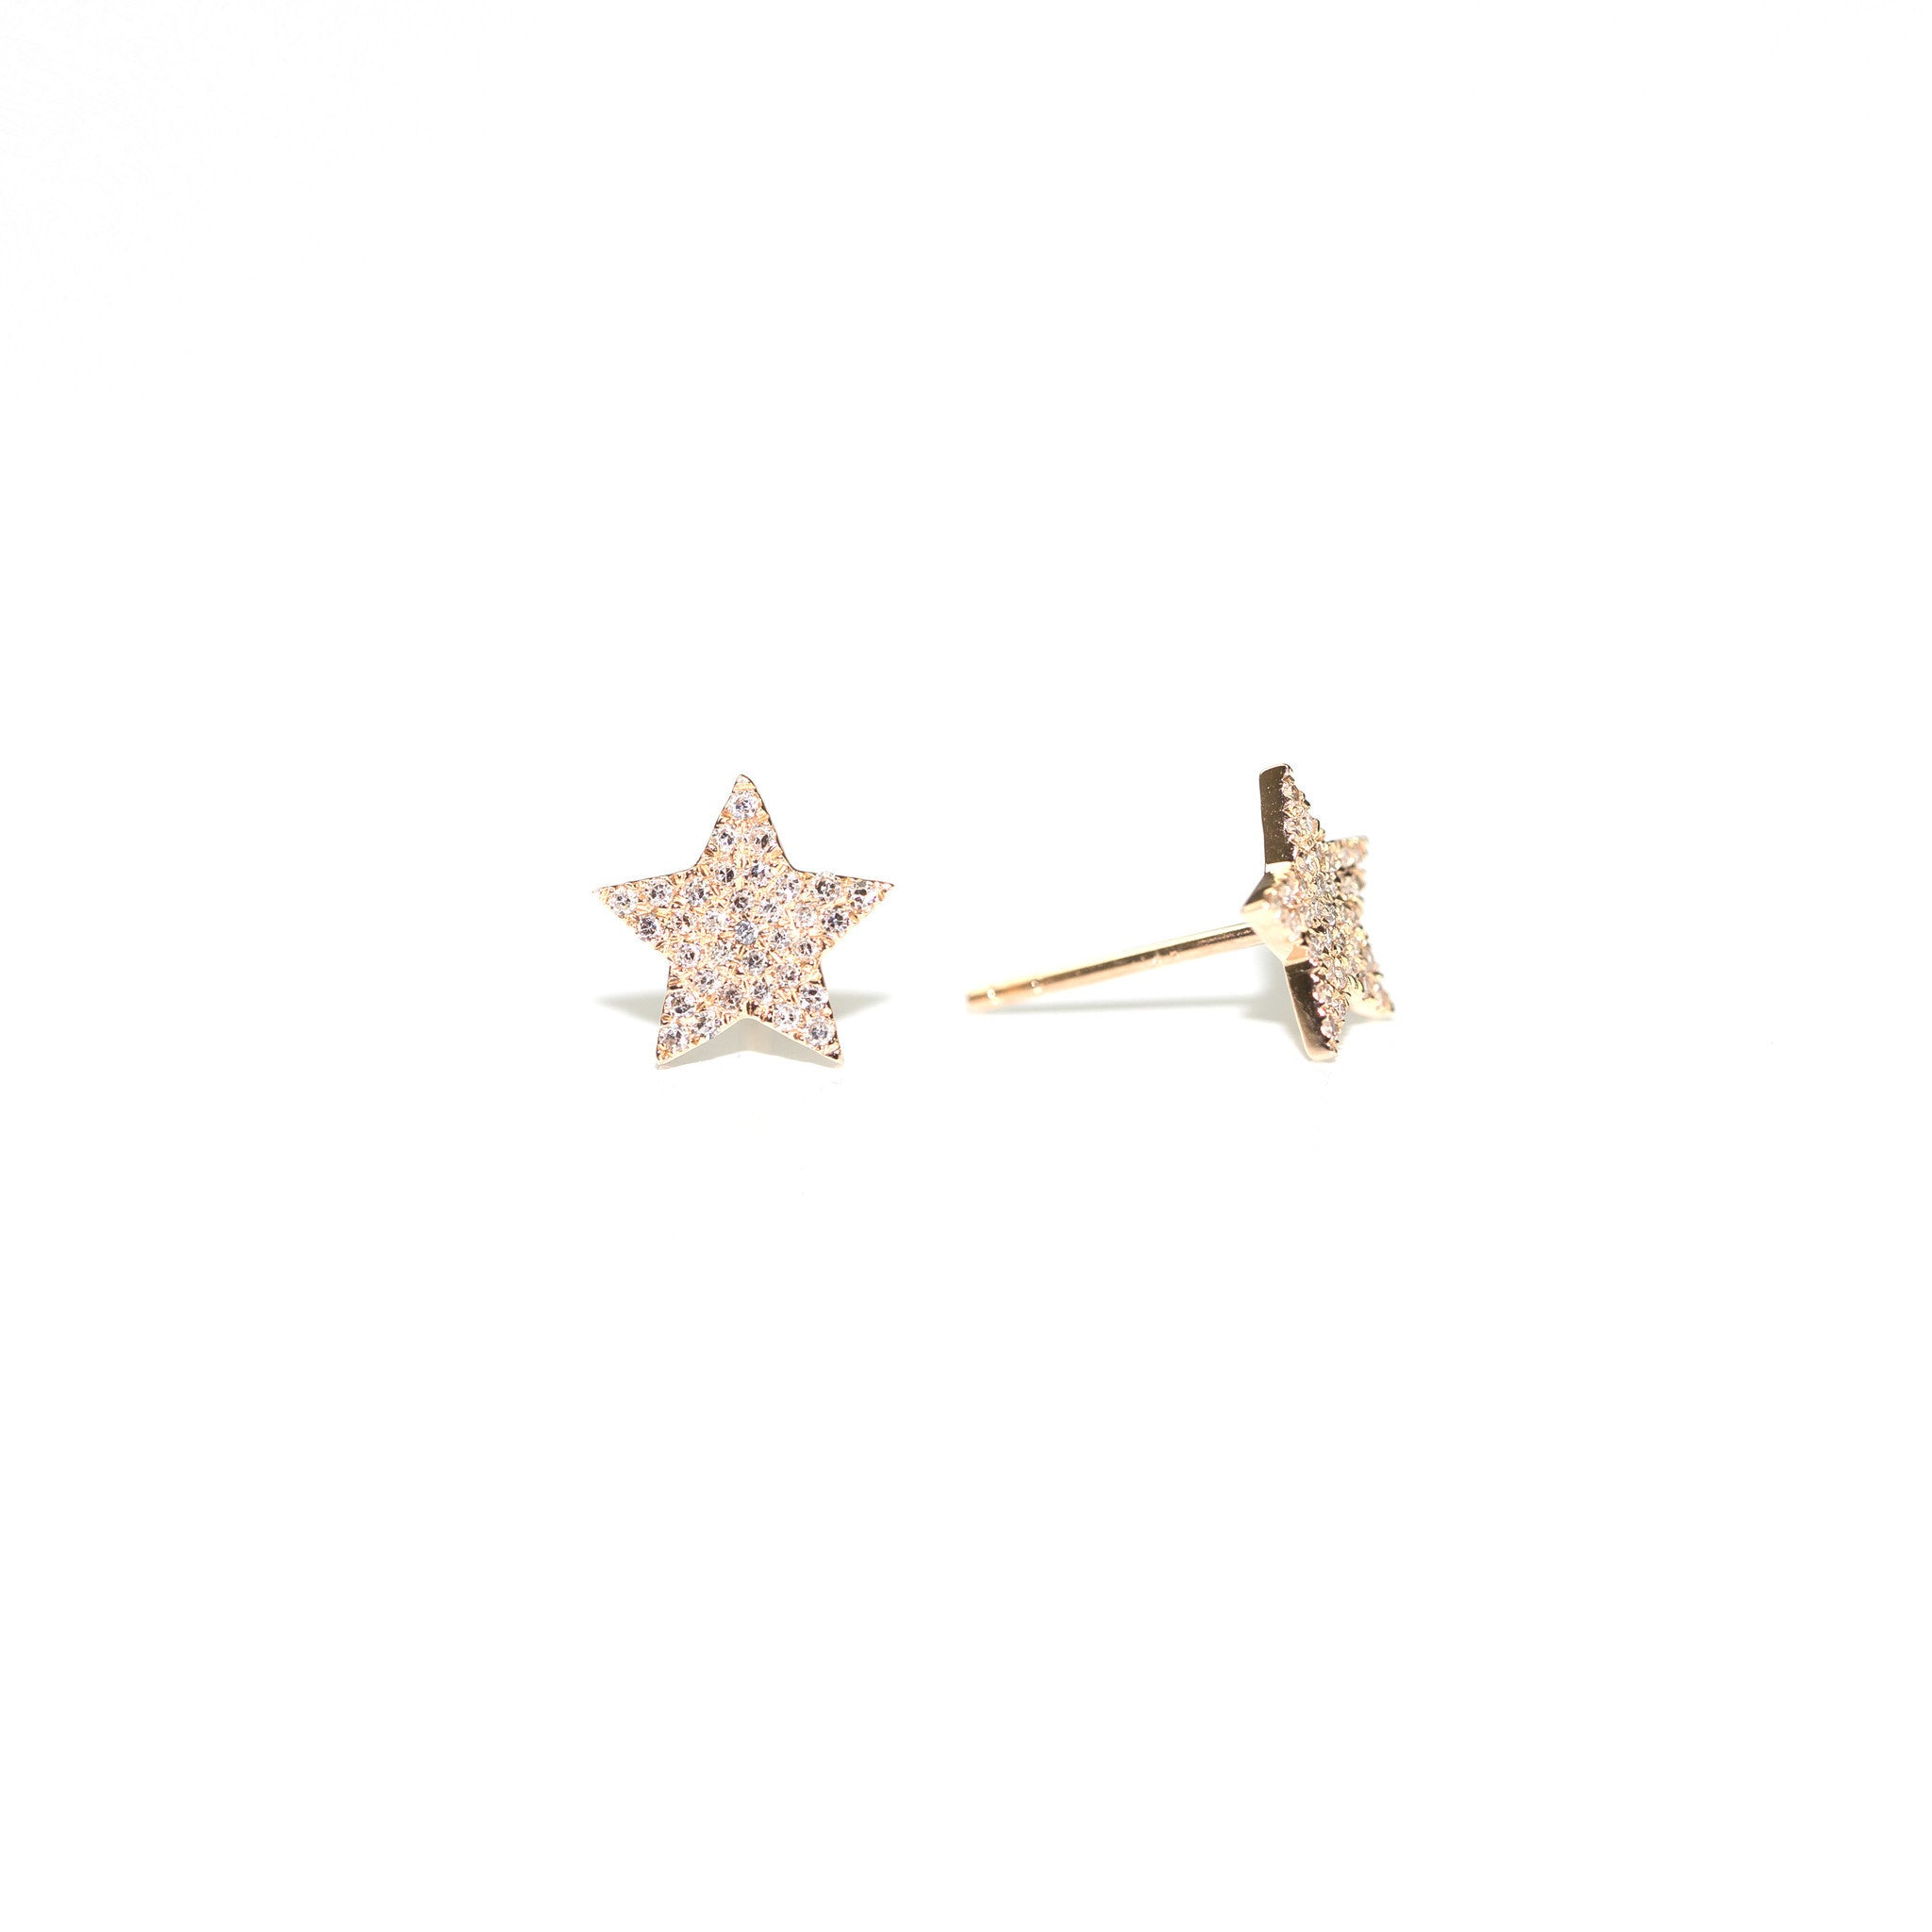 elizabet earrings marquise collection blaze diamond stud star shop the from ambar bez